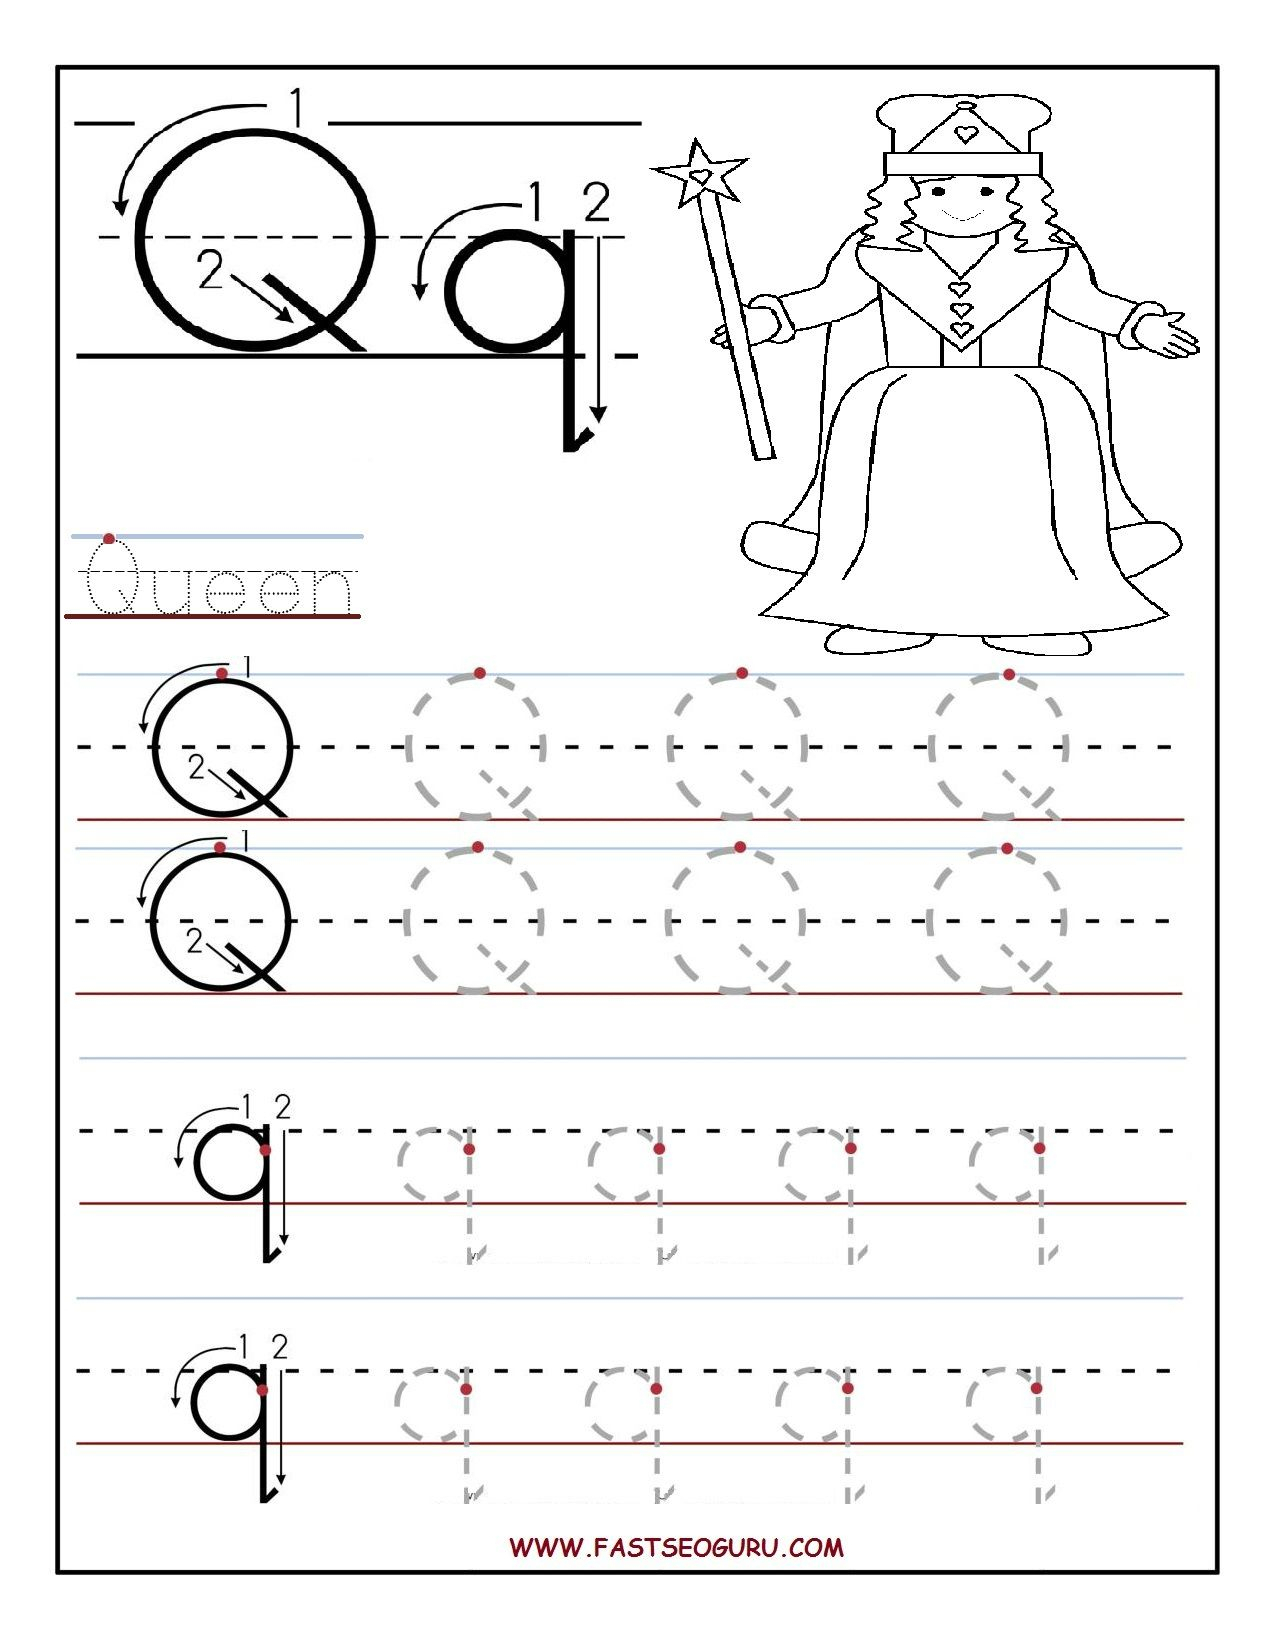 Printable Letter Q Tracing Worksheets For Preschool inside Tracing Letter Q Worksheets